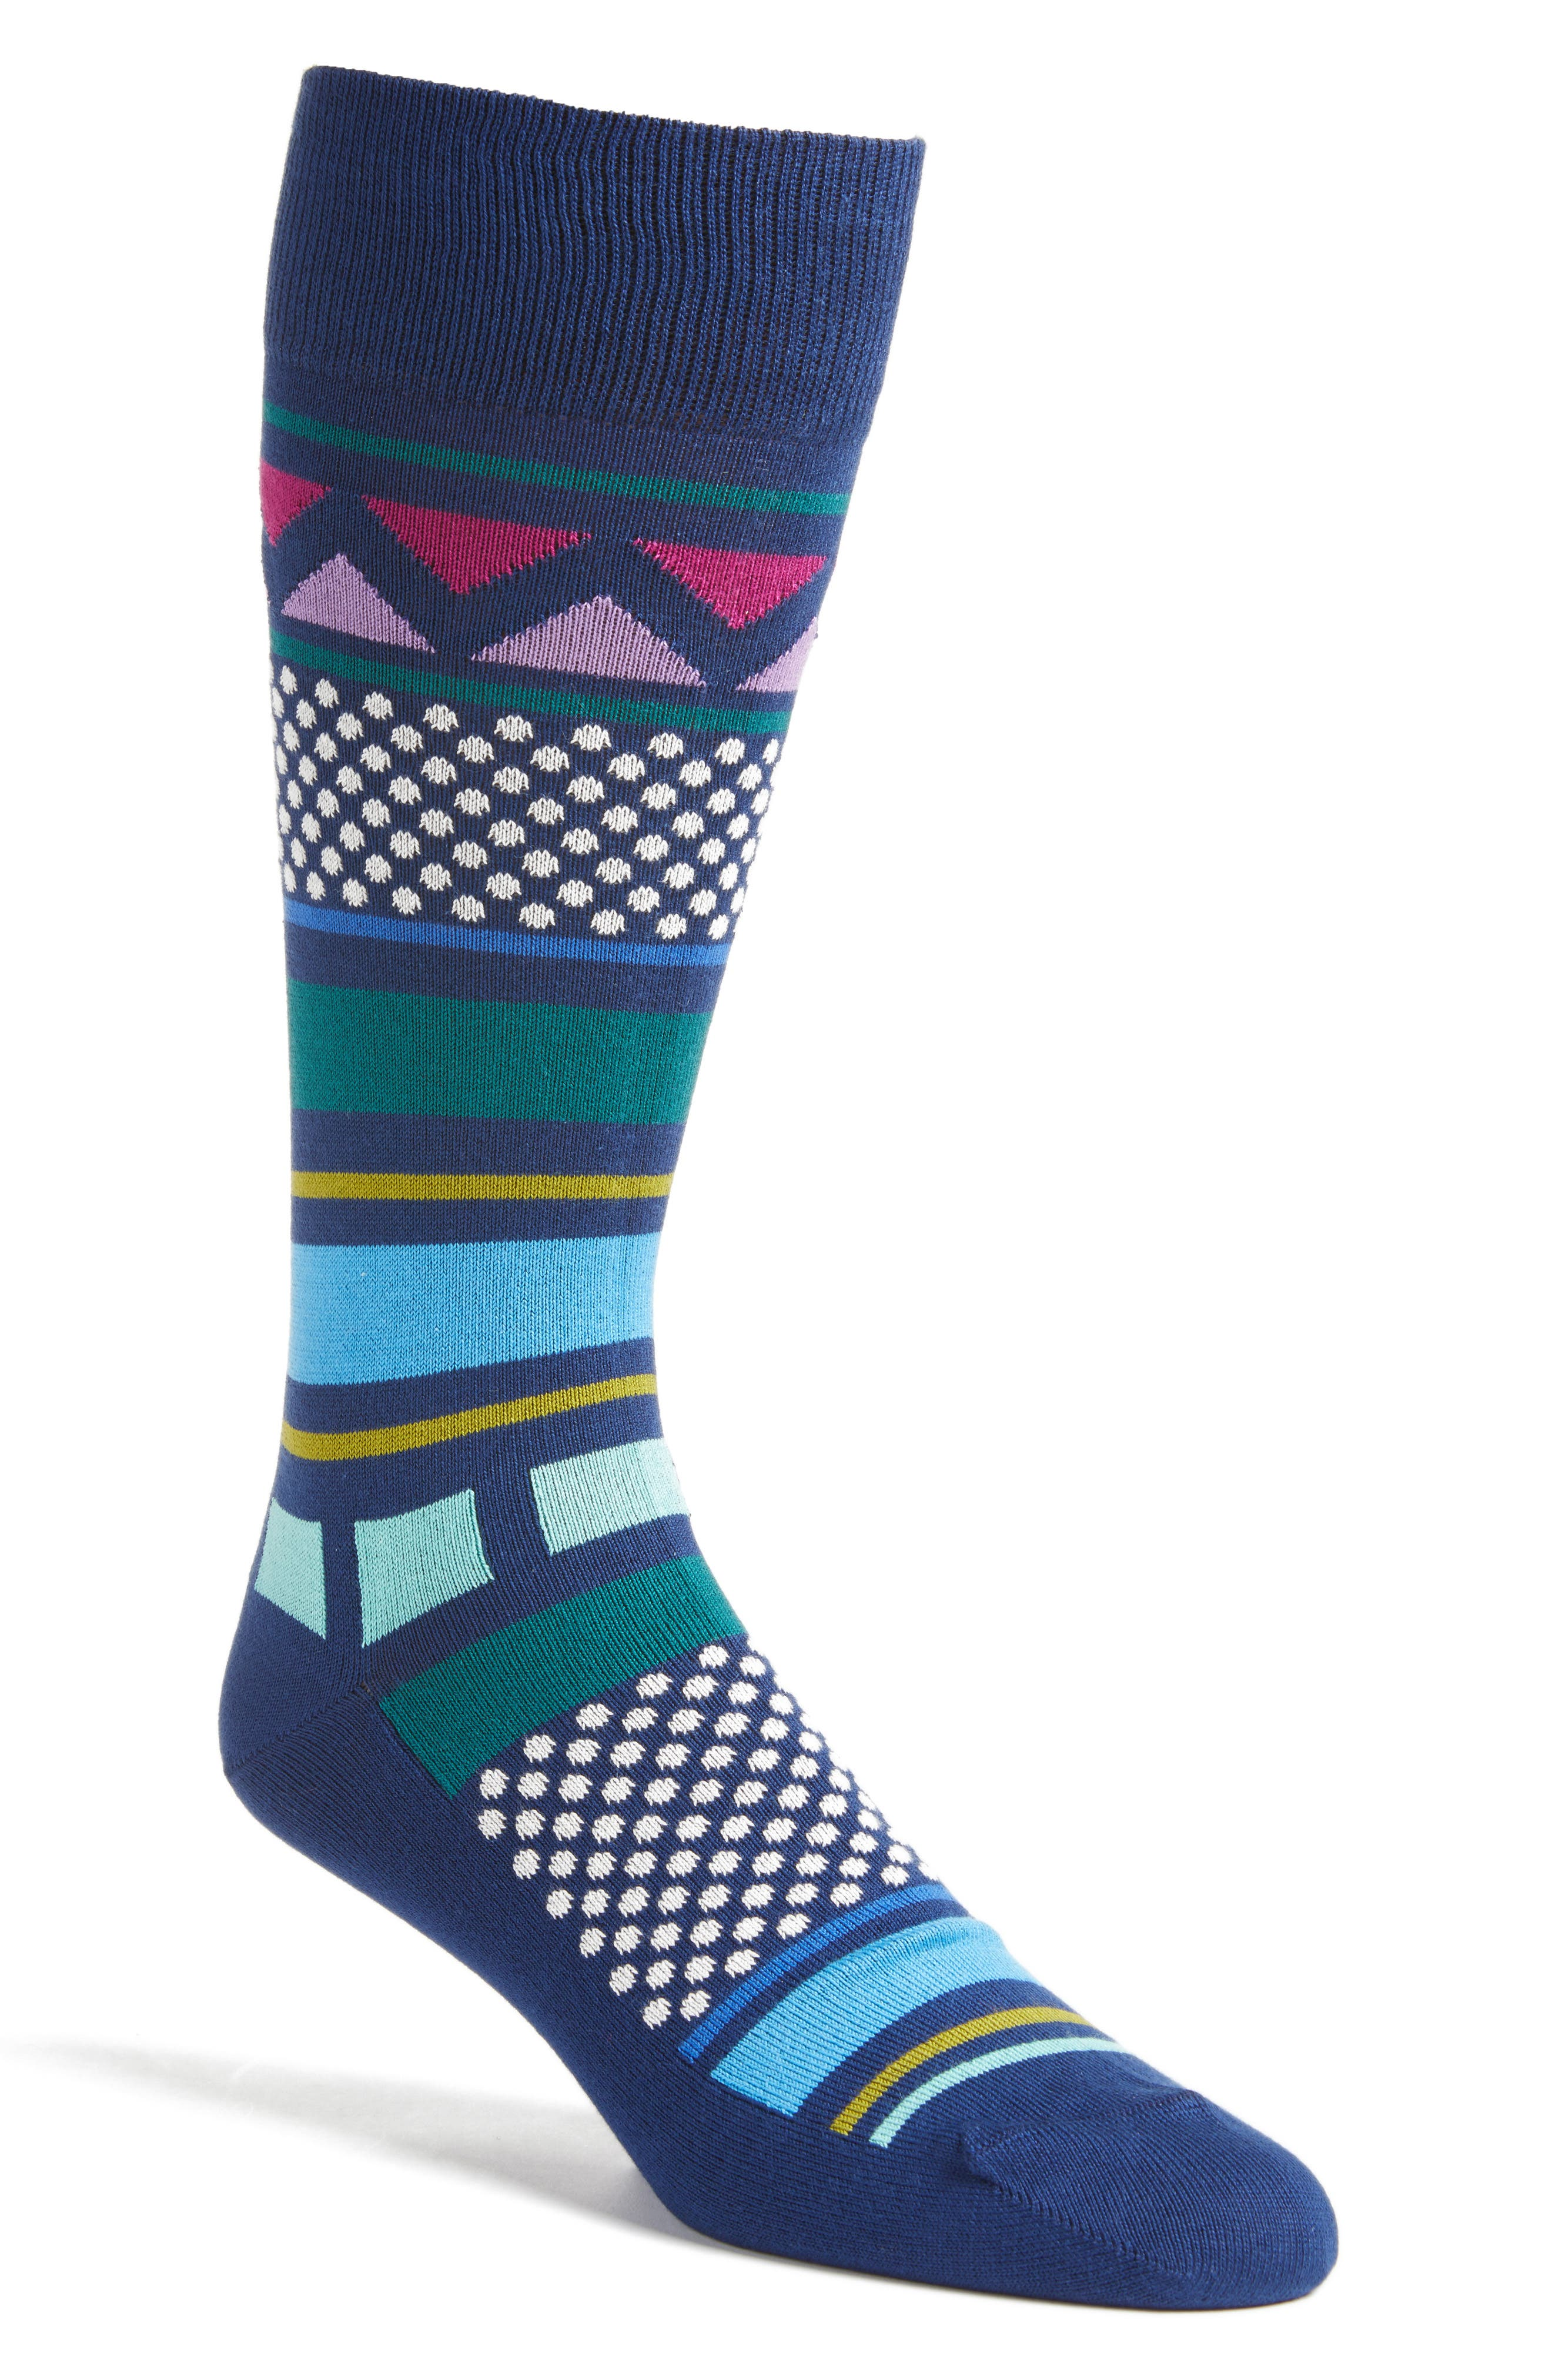 KWA Crew Socks,                         Main,                         color, 415